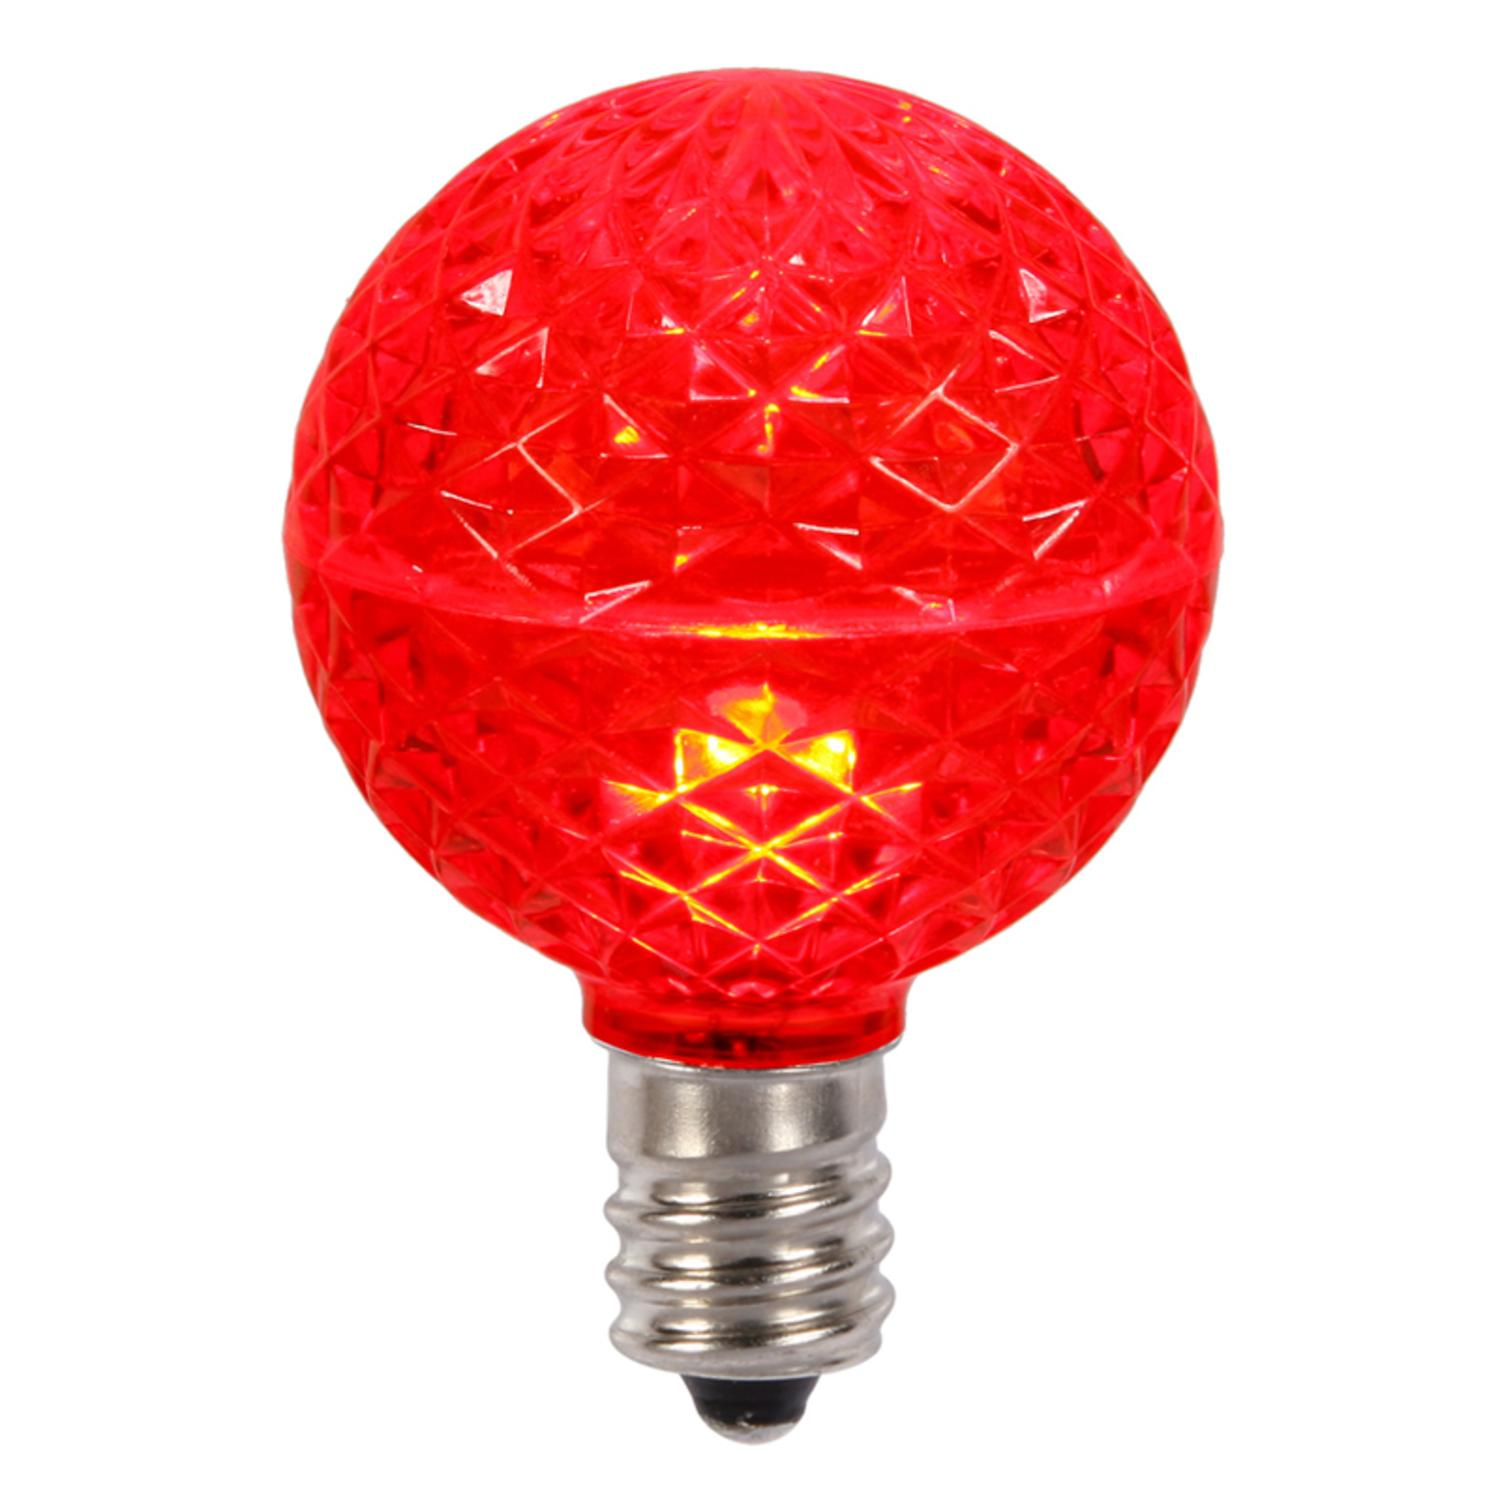 Club Pack of 25 LED G50 Red Replacement Christmas LIGHT BULBS - E17 Base